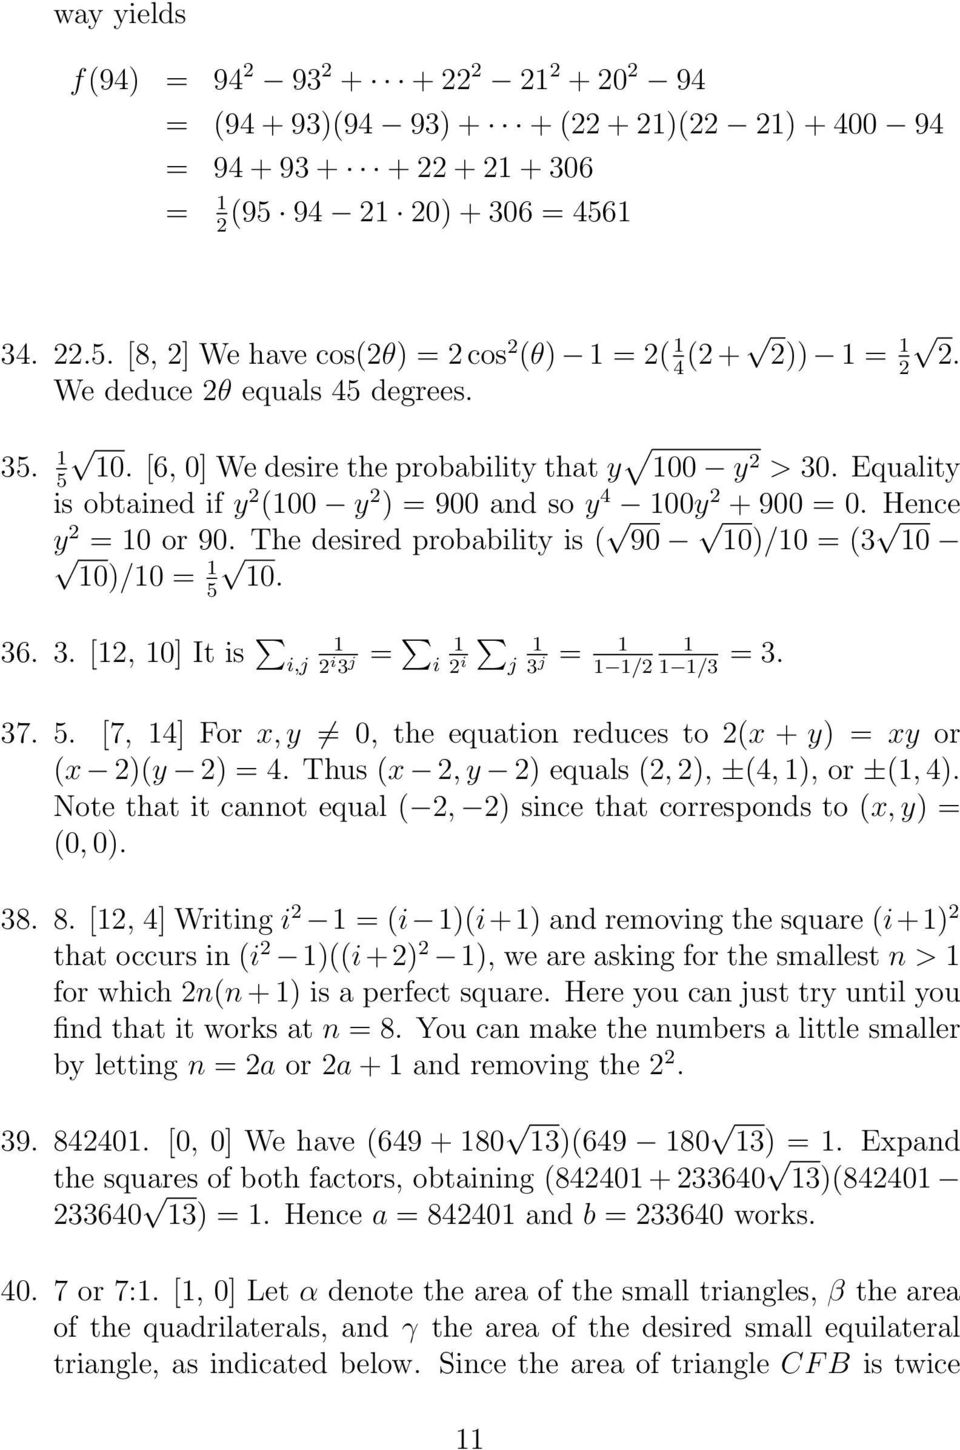 5 0 36 3 [, 0] It is i,j i 3 j = i i j = 3 j = 3 / /3 37 5 [7, 4] For x, y 0, the equation reduces to (x + y) = xy or (x )(y ) = 4 Thus (x, y ) equals (, ), ±(4, ), or ±(, 4) Note that it cannot